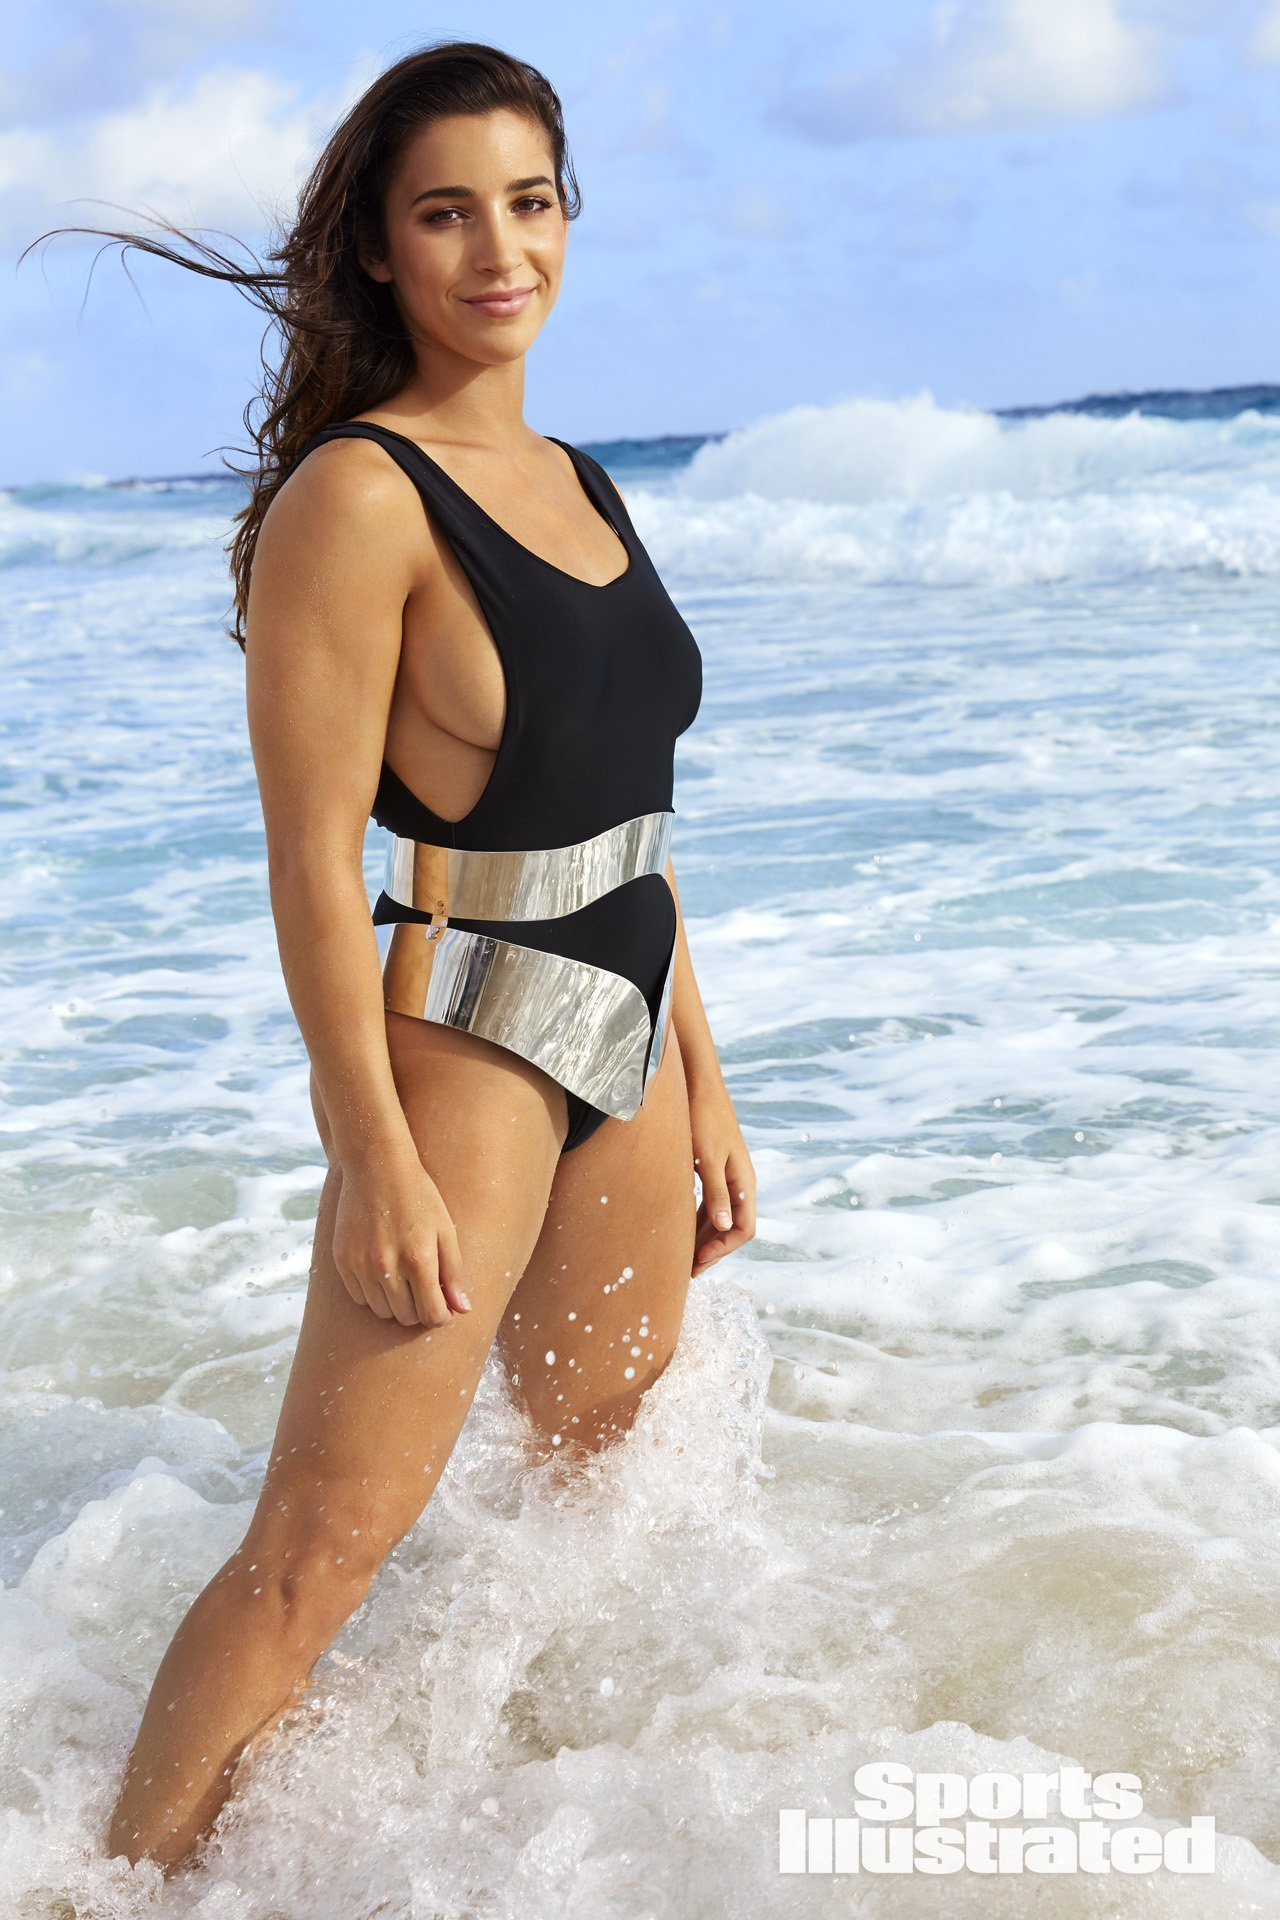 Aly Raisman SI Swimsuit 2018 outtakes - Swimsuit   SI.com